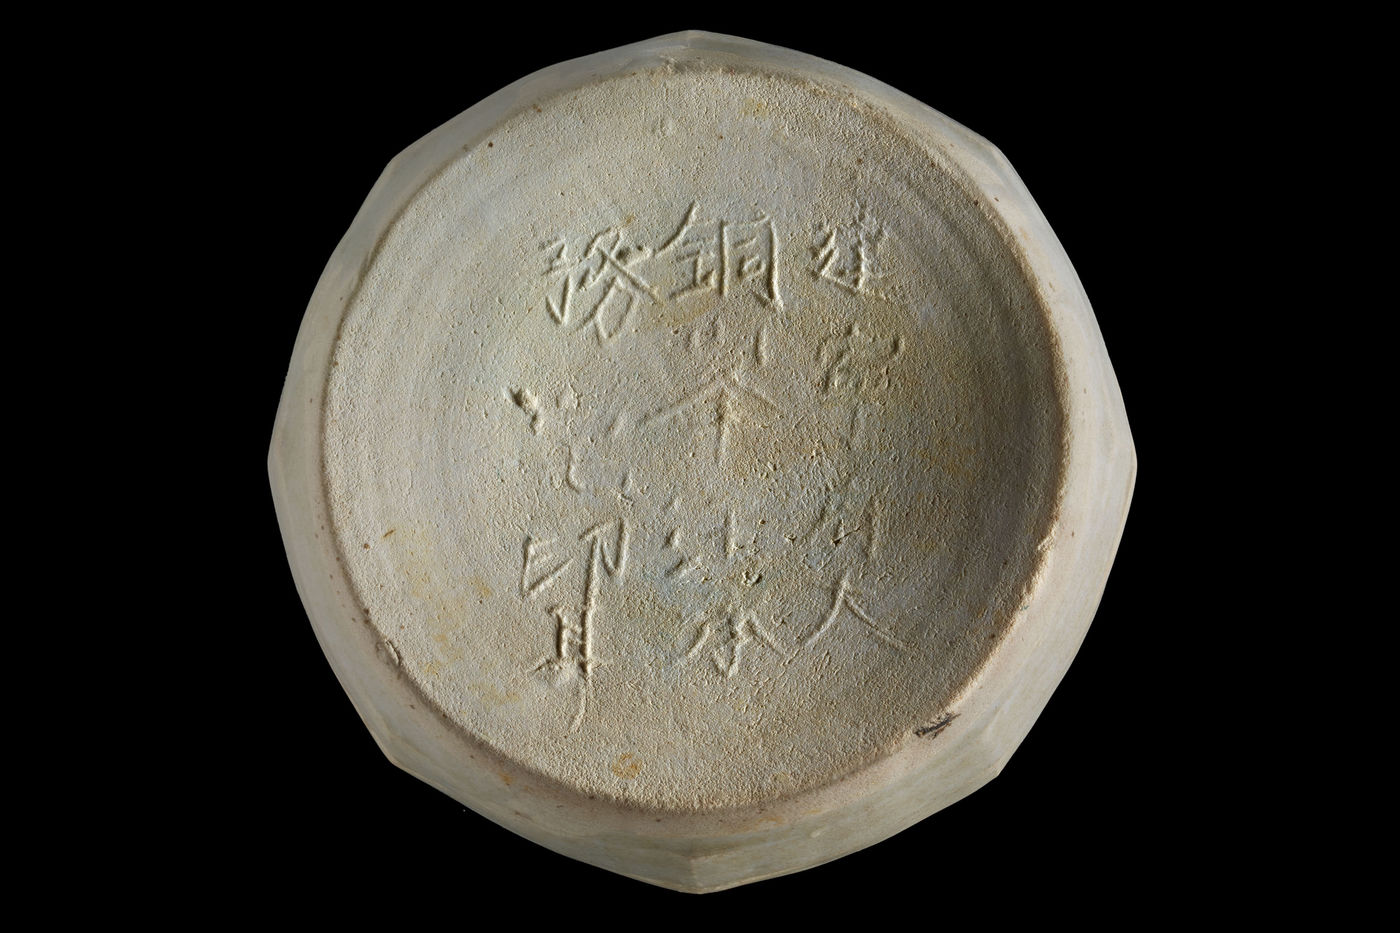 The base of a ceramic container photographed on a black background. There are raised Chinese characters on the base's recessed surface, which is round. Beyond the round edge, it appears as though the body of the container is octagonal in shape.